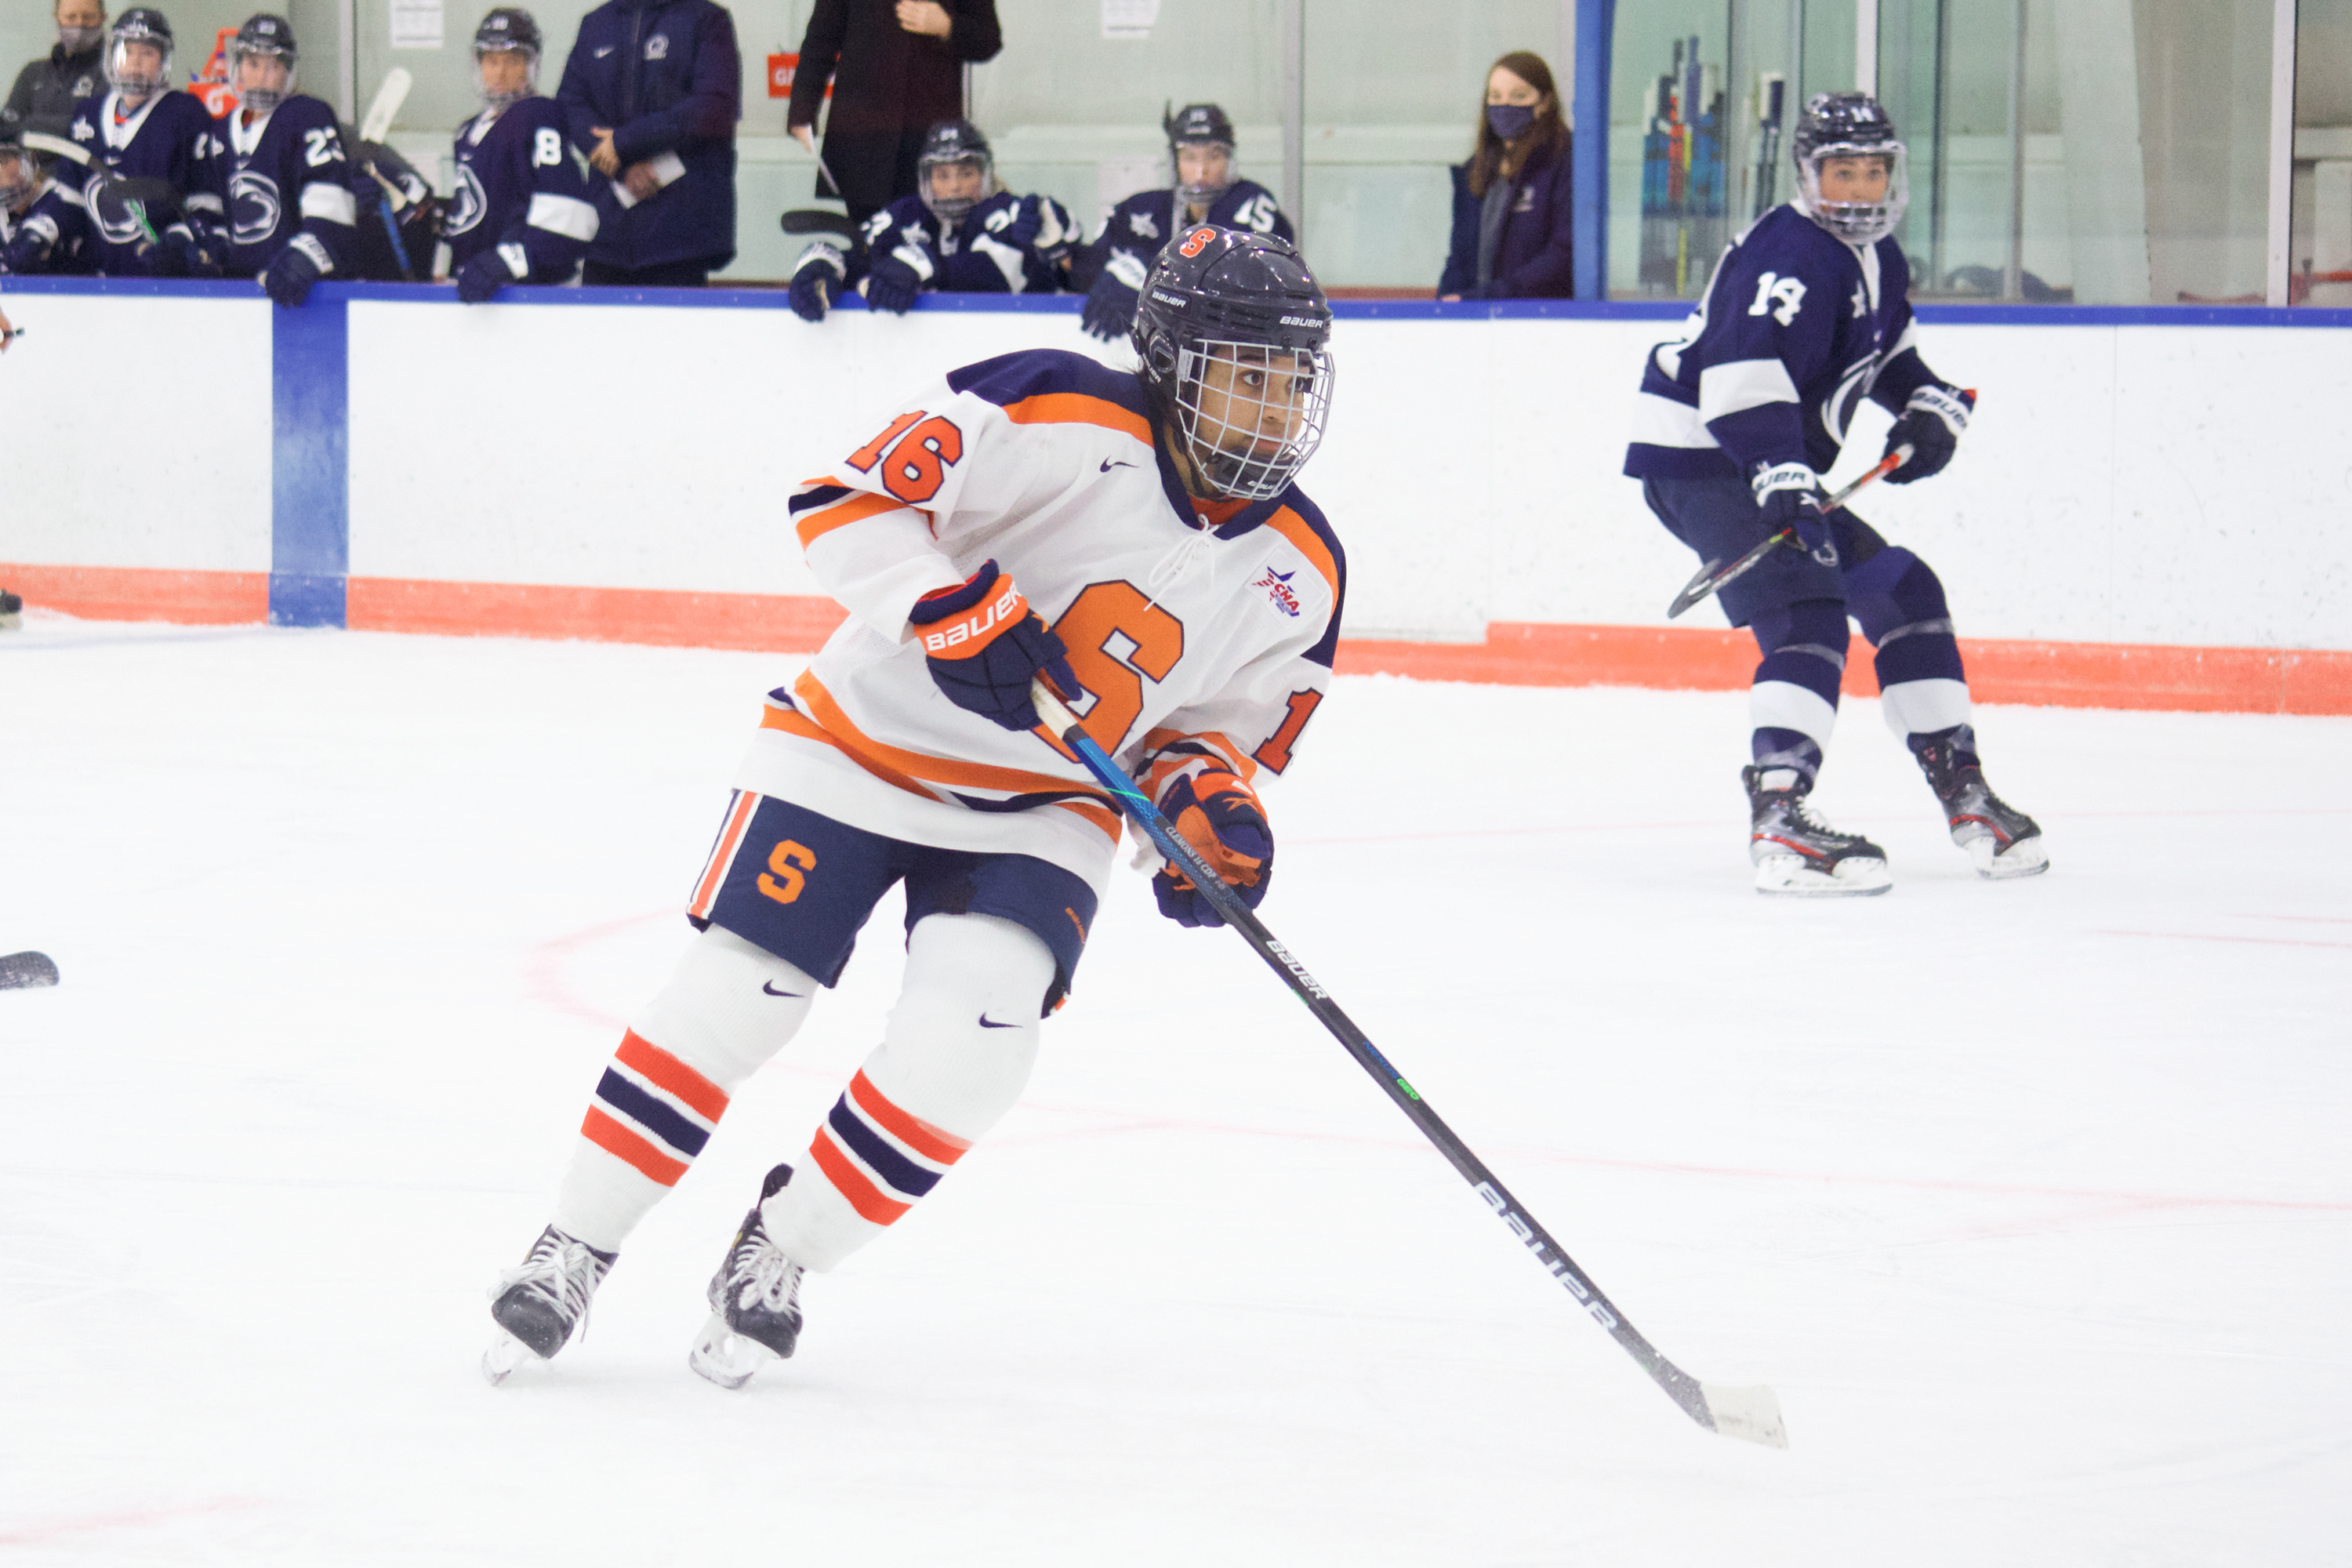 Syracuse freshman Rayla Clemons travels down ice during the Orange's game against Penn State on Dec. 12, 2020.